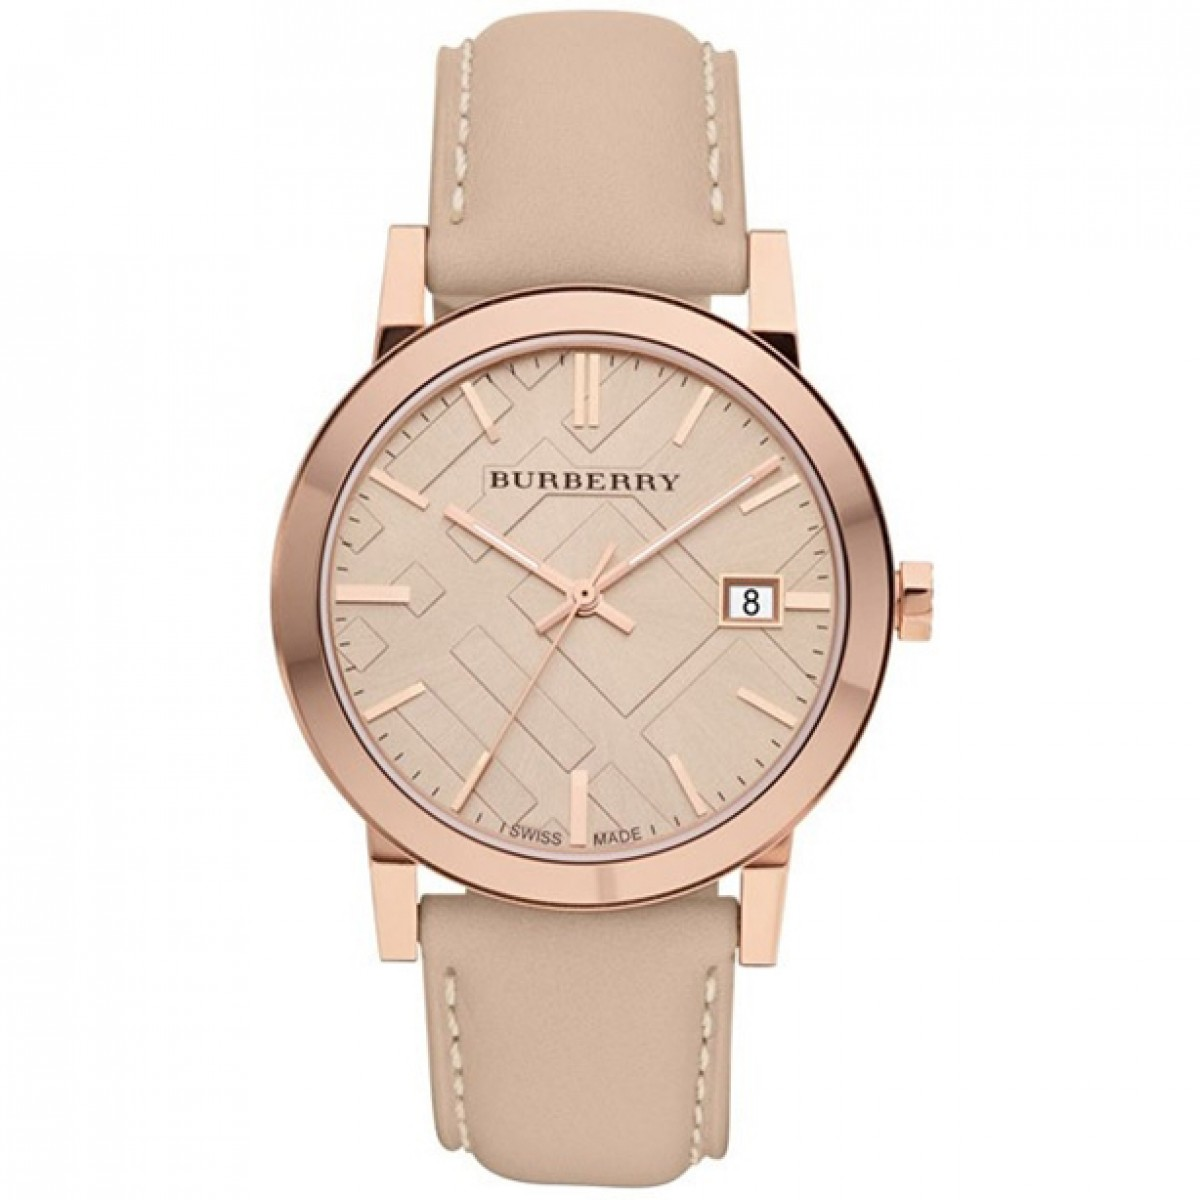 Unisex Burberry Tan Dial Leather Strap Watch BU9014